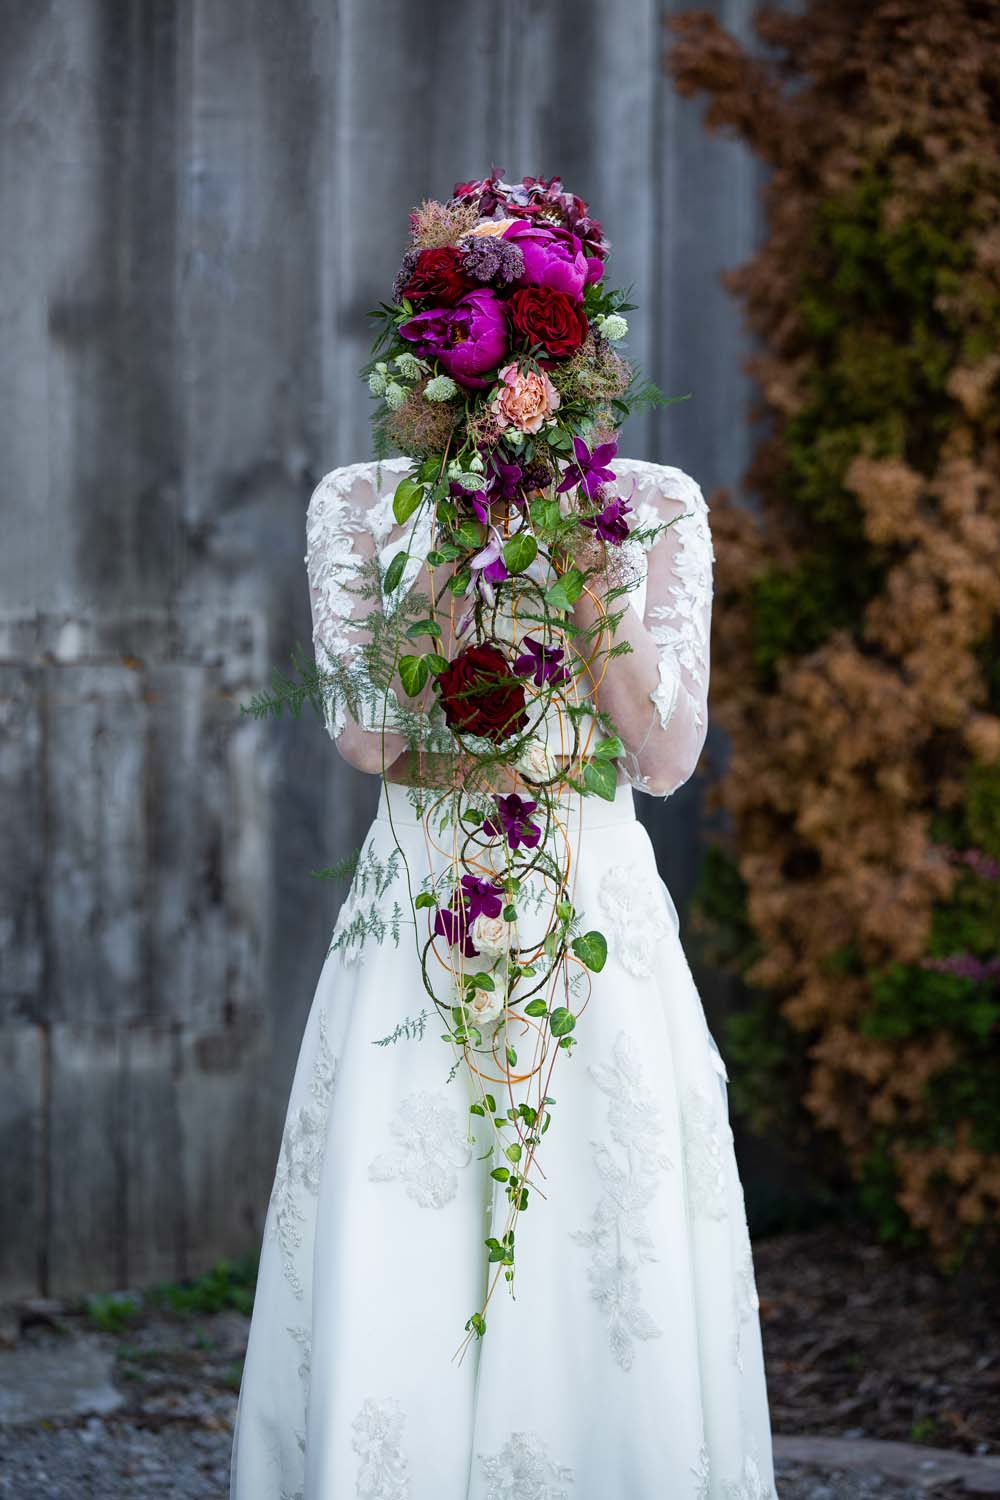 This Styled Shoot Was Inspired By Medieval Royalty - Bouquet